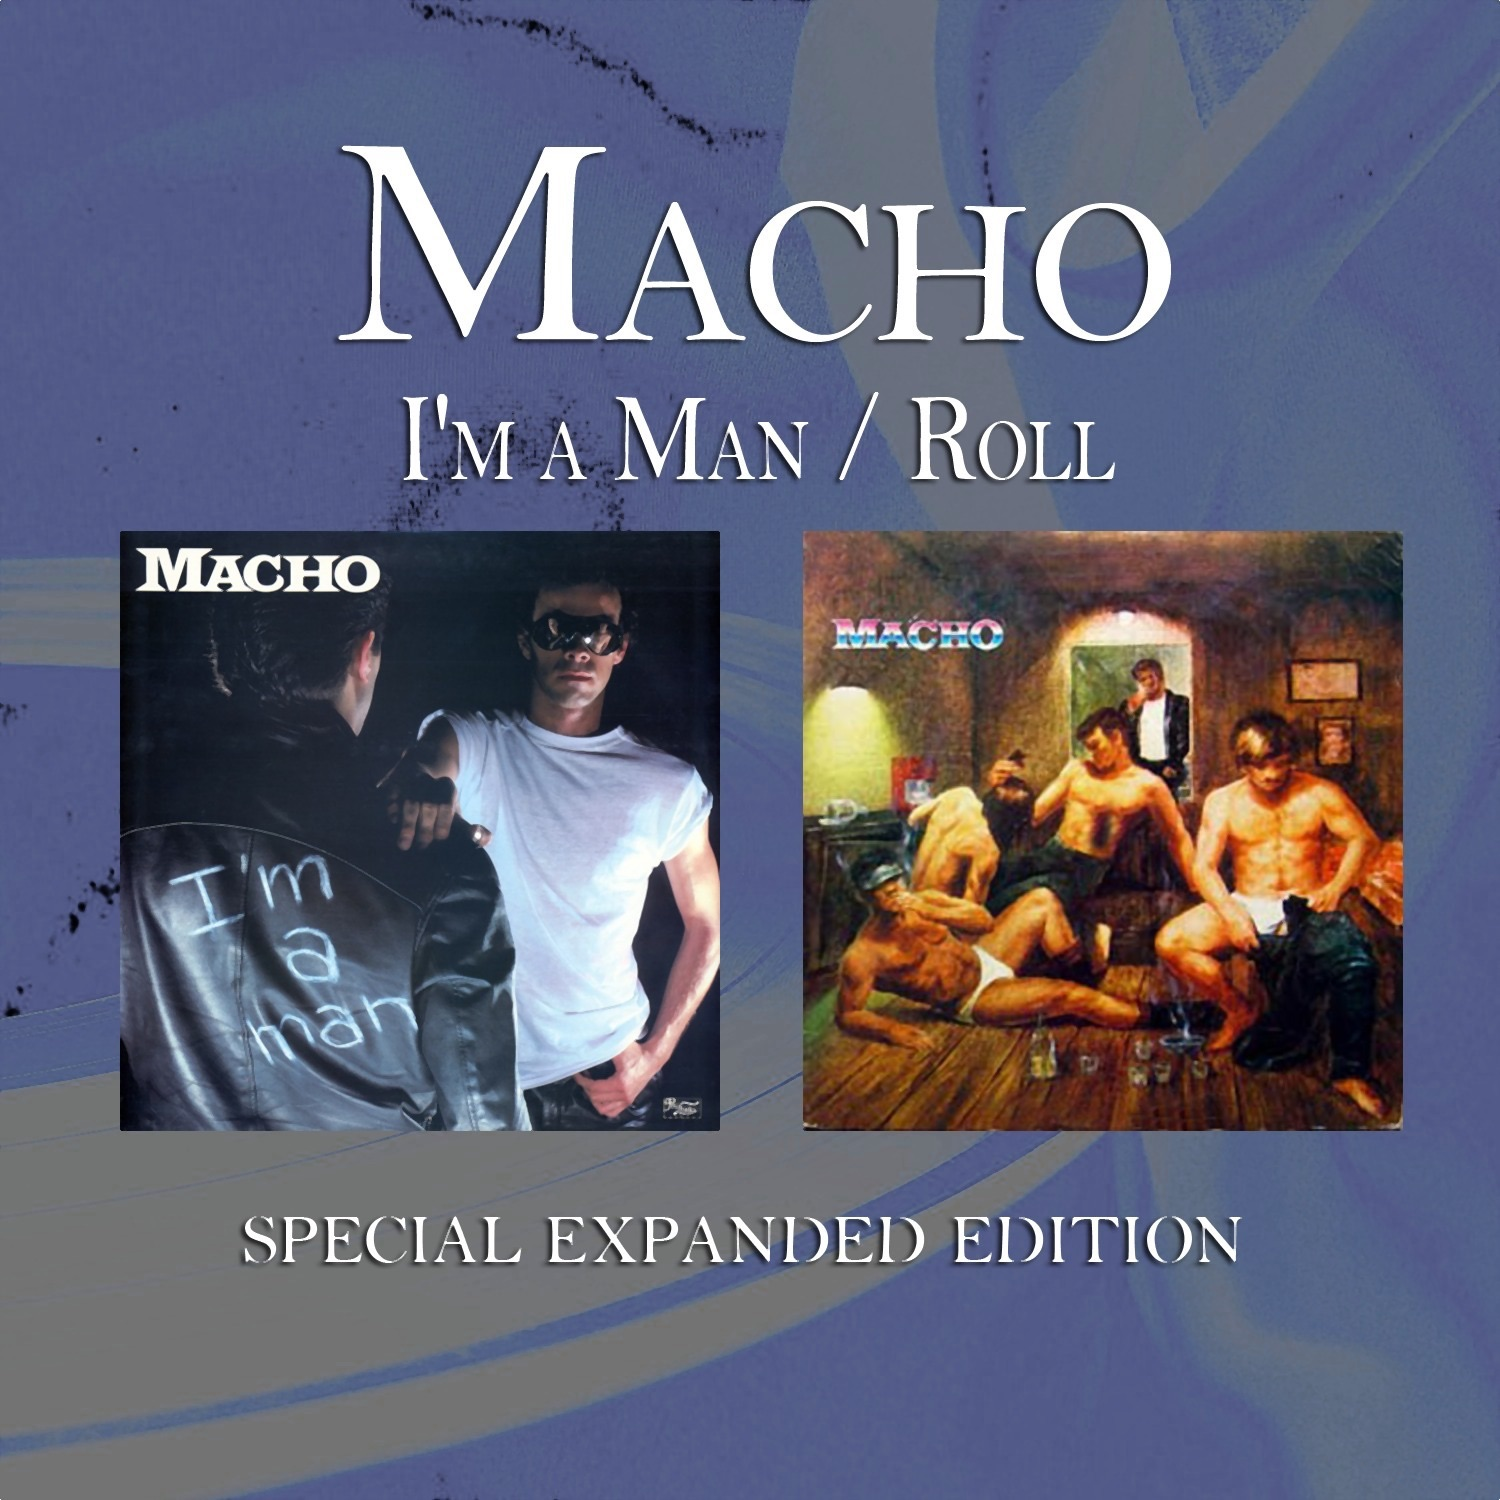 I'm a Man / Roll (Special Expanded Edition)